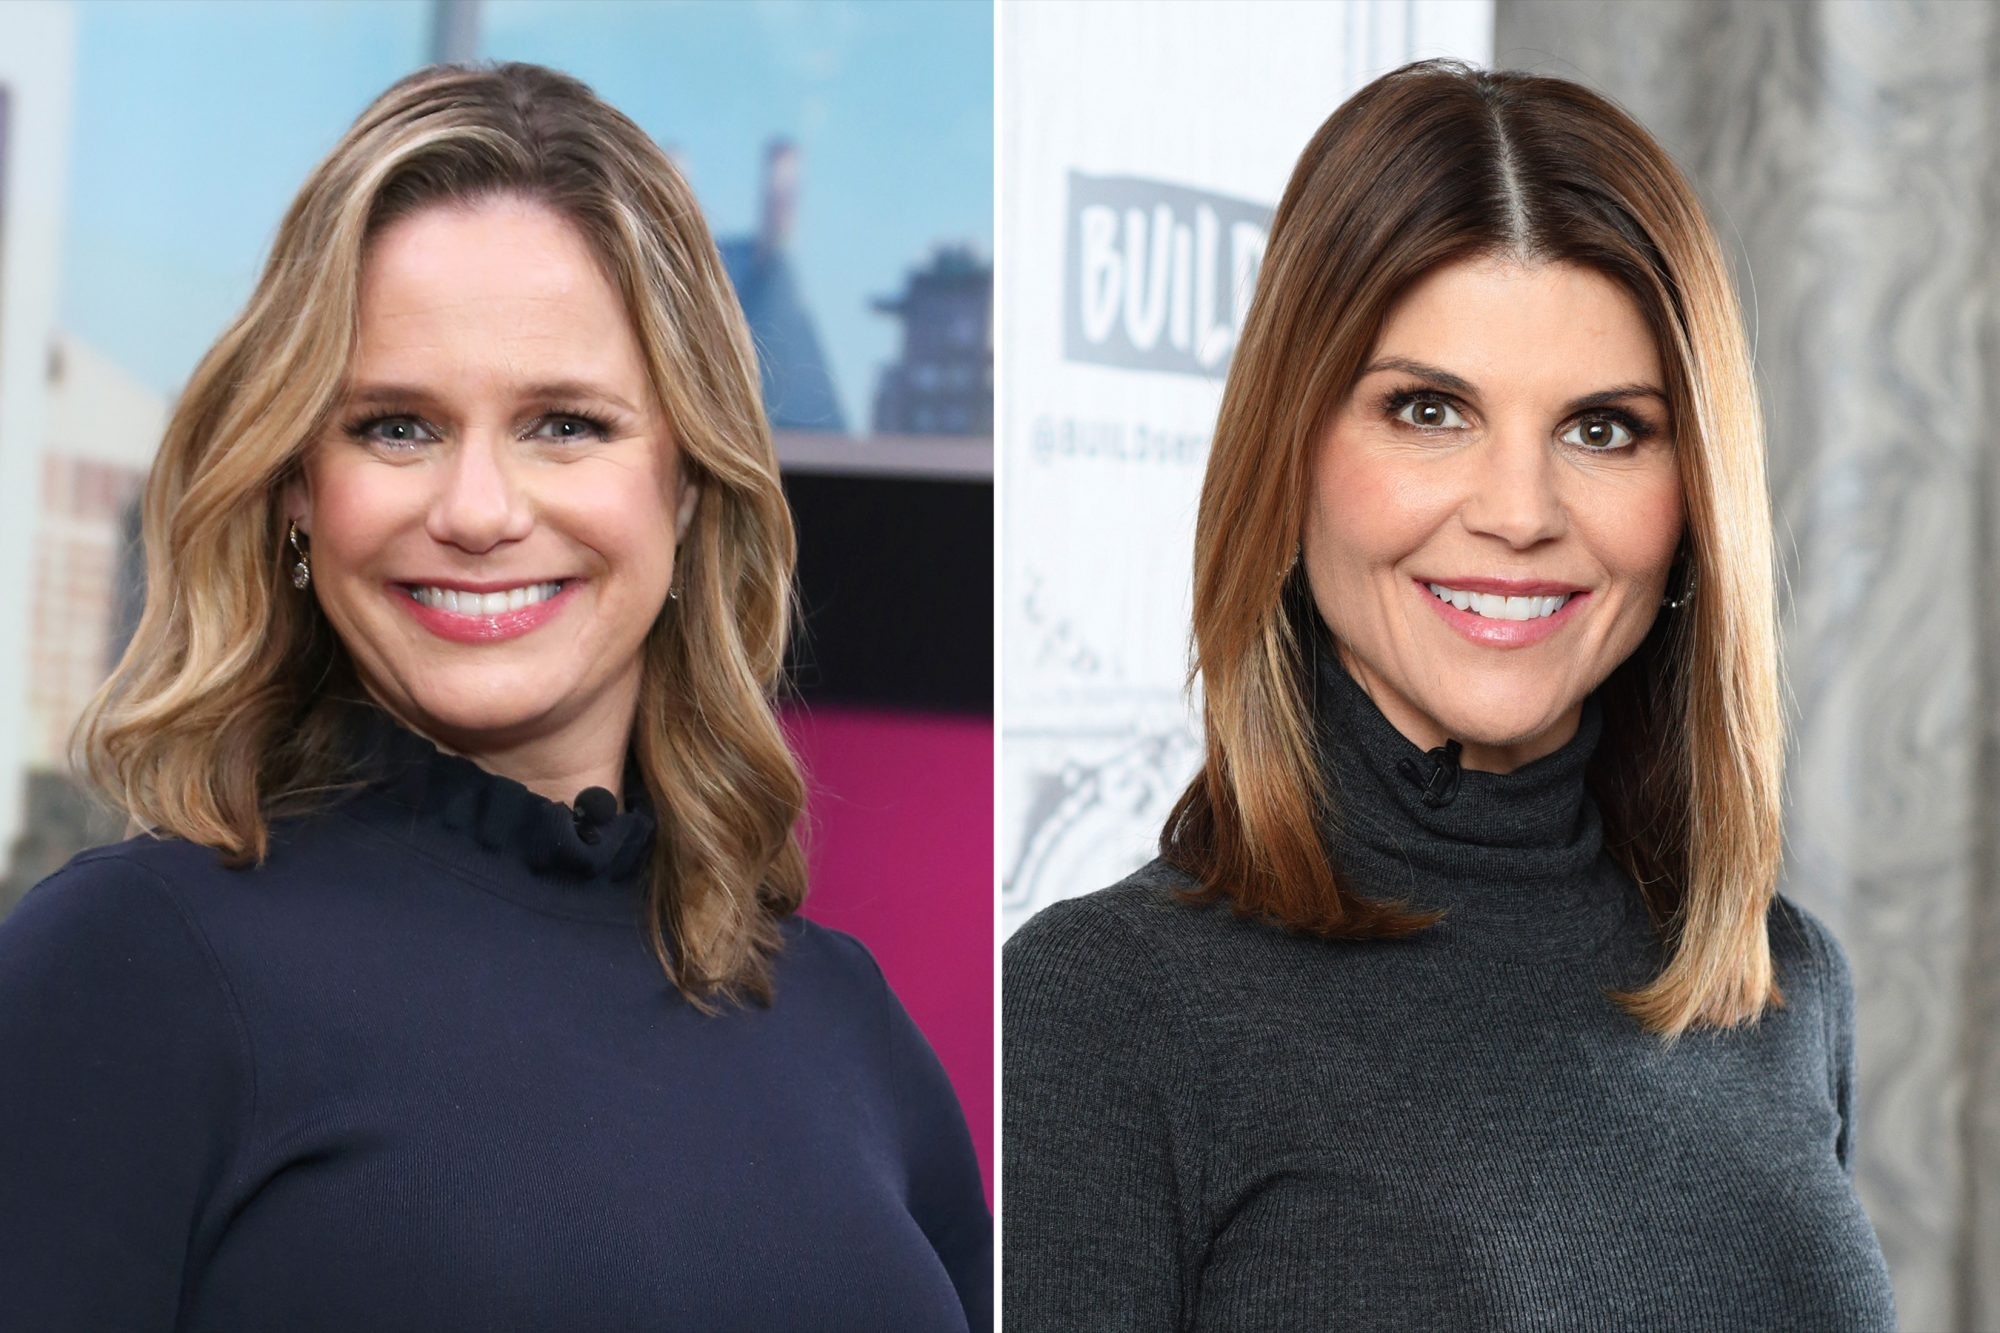 Andrea Barber and Lori Loughlin